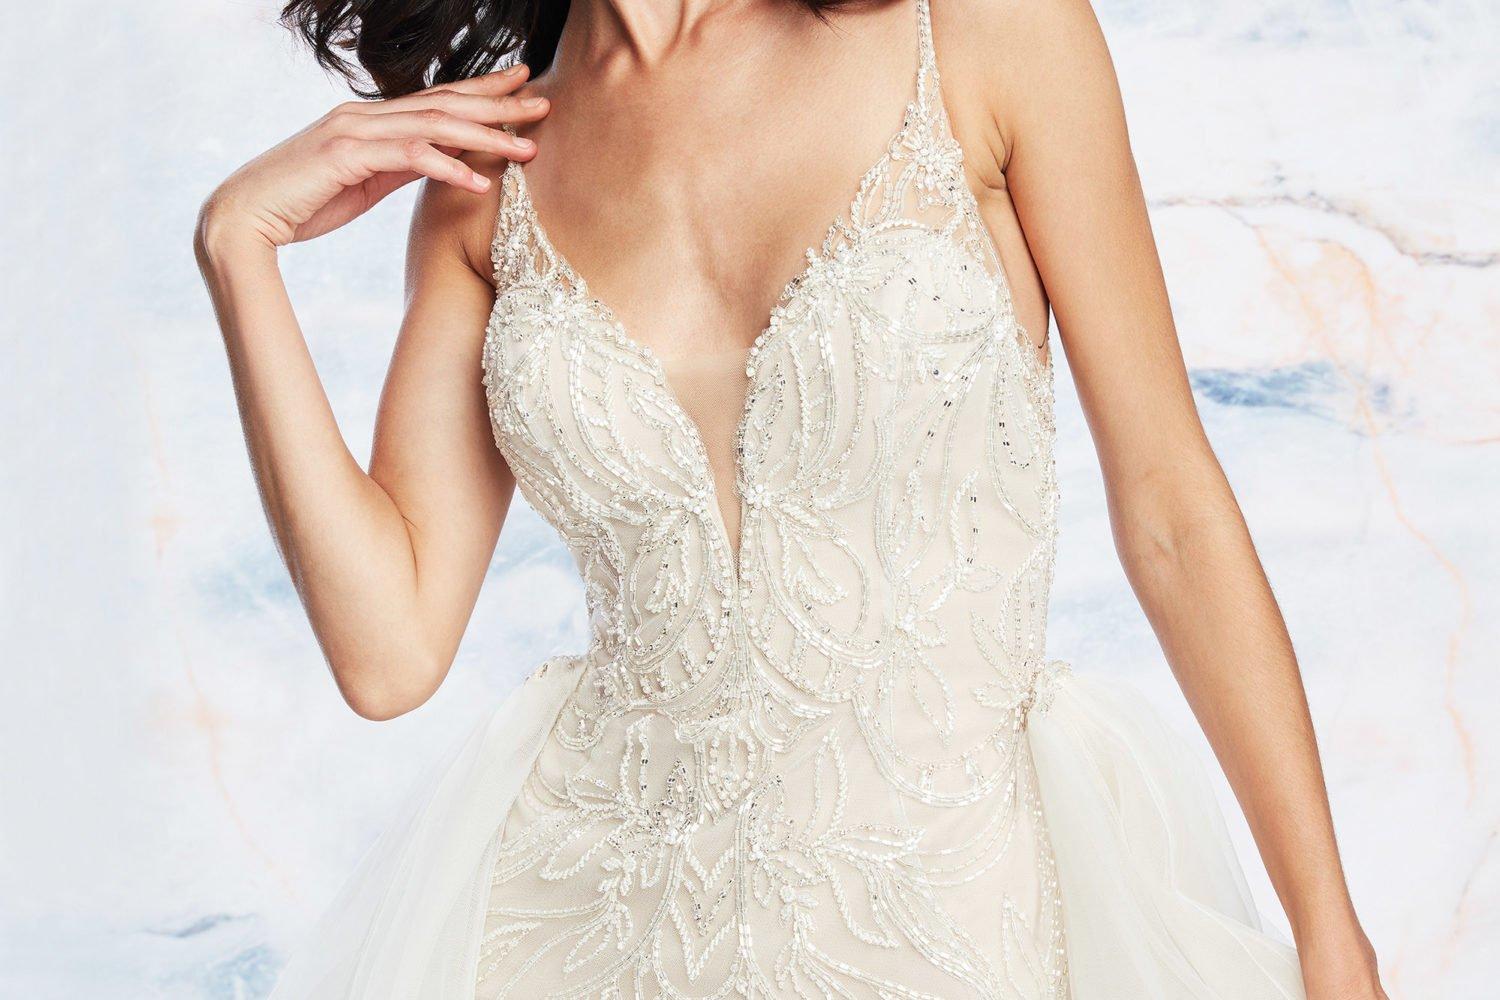 de06c2b18e A Two-in-One Look: 7 Wedding Dresses With Removable Overskirts · bridal -pantsuits